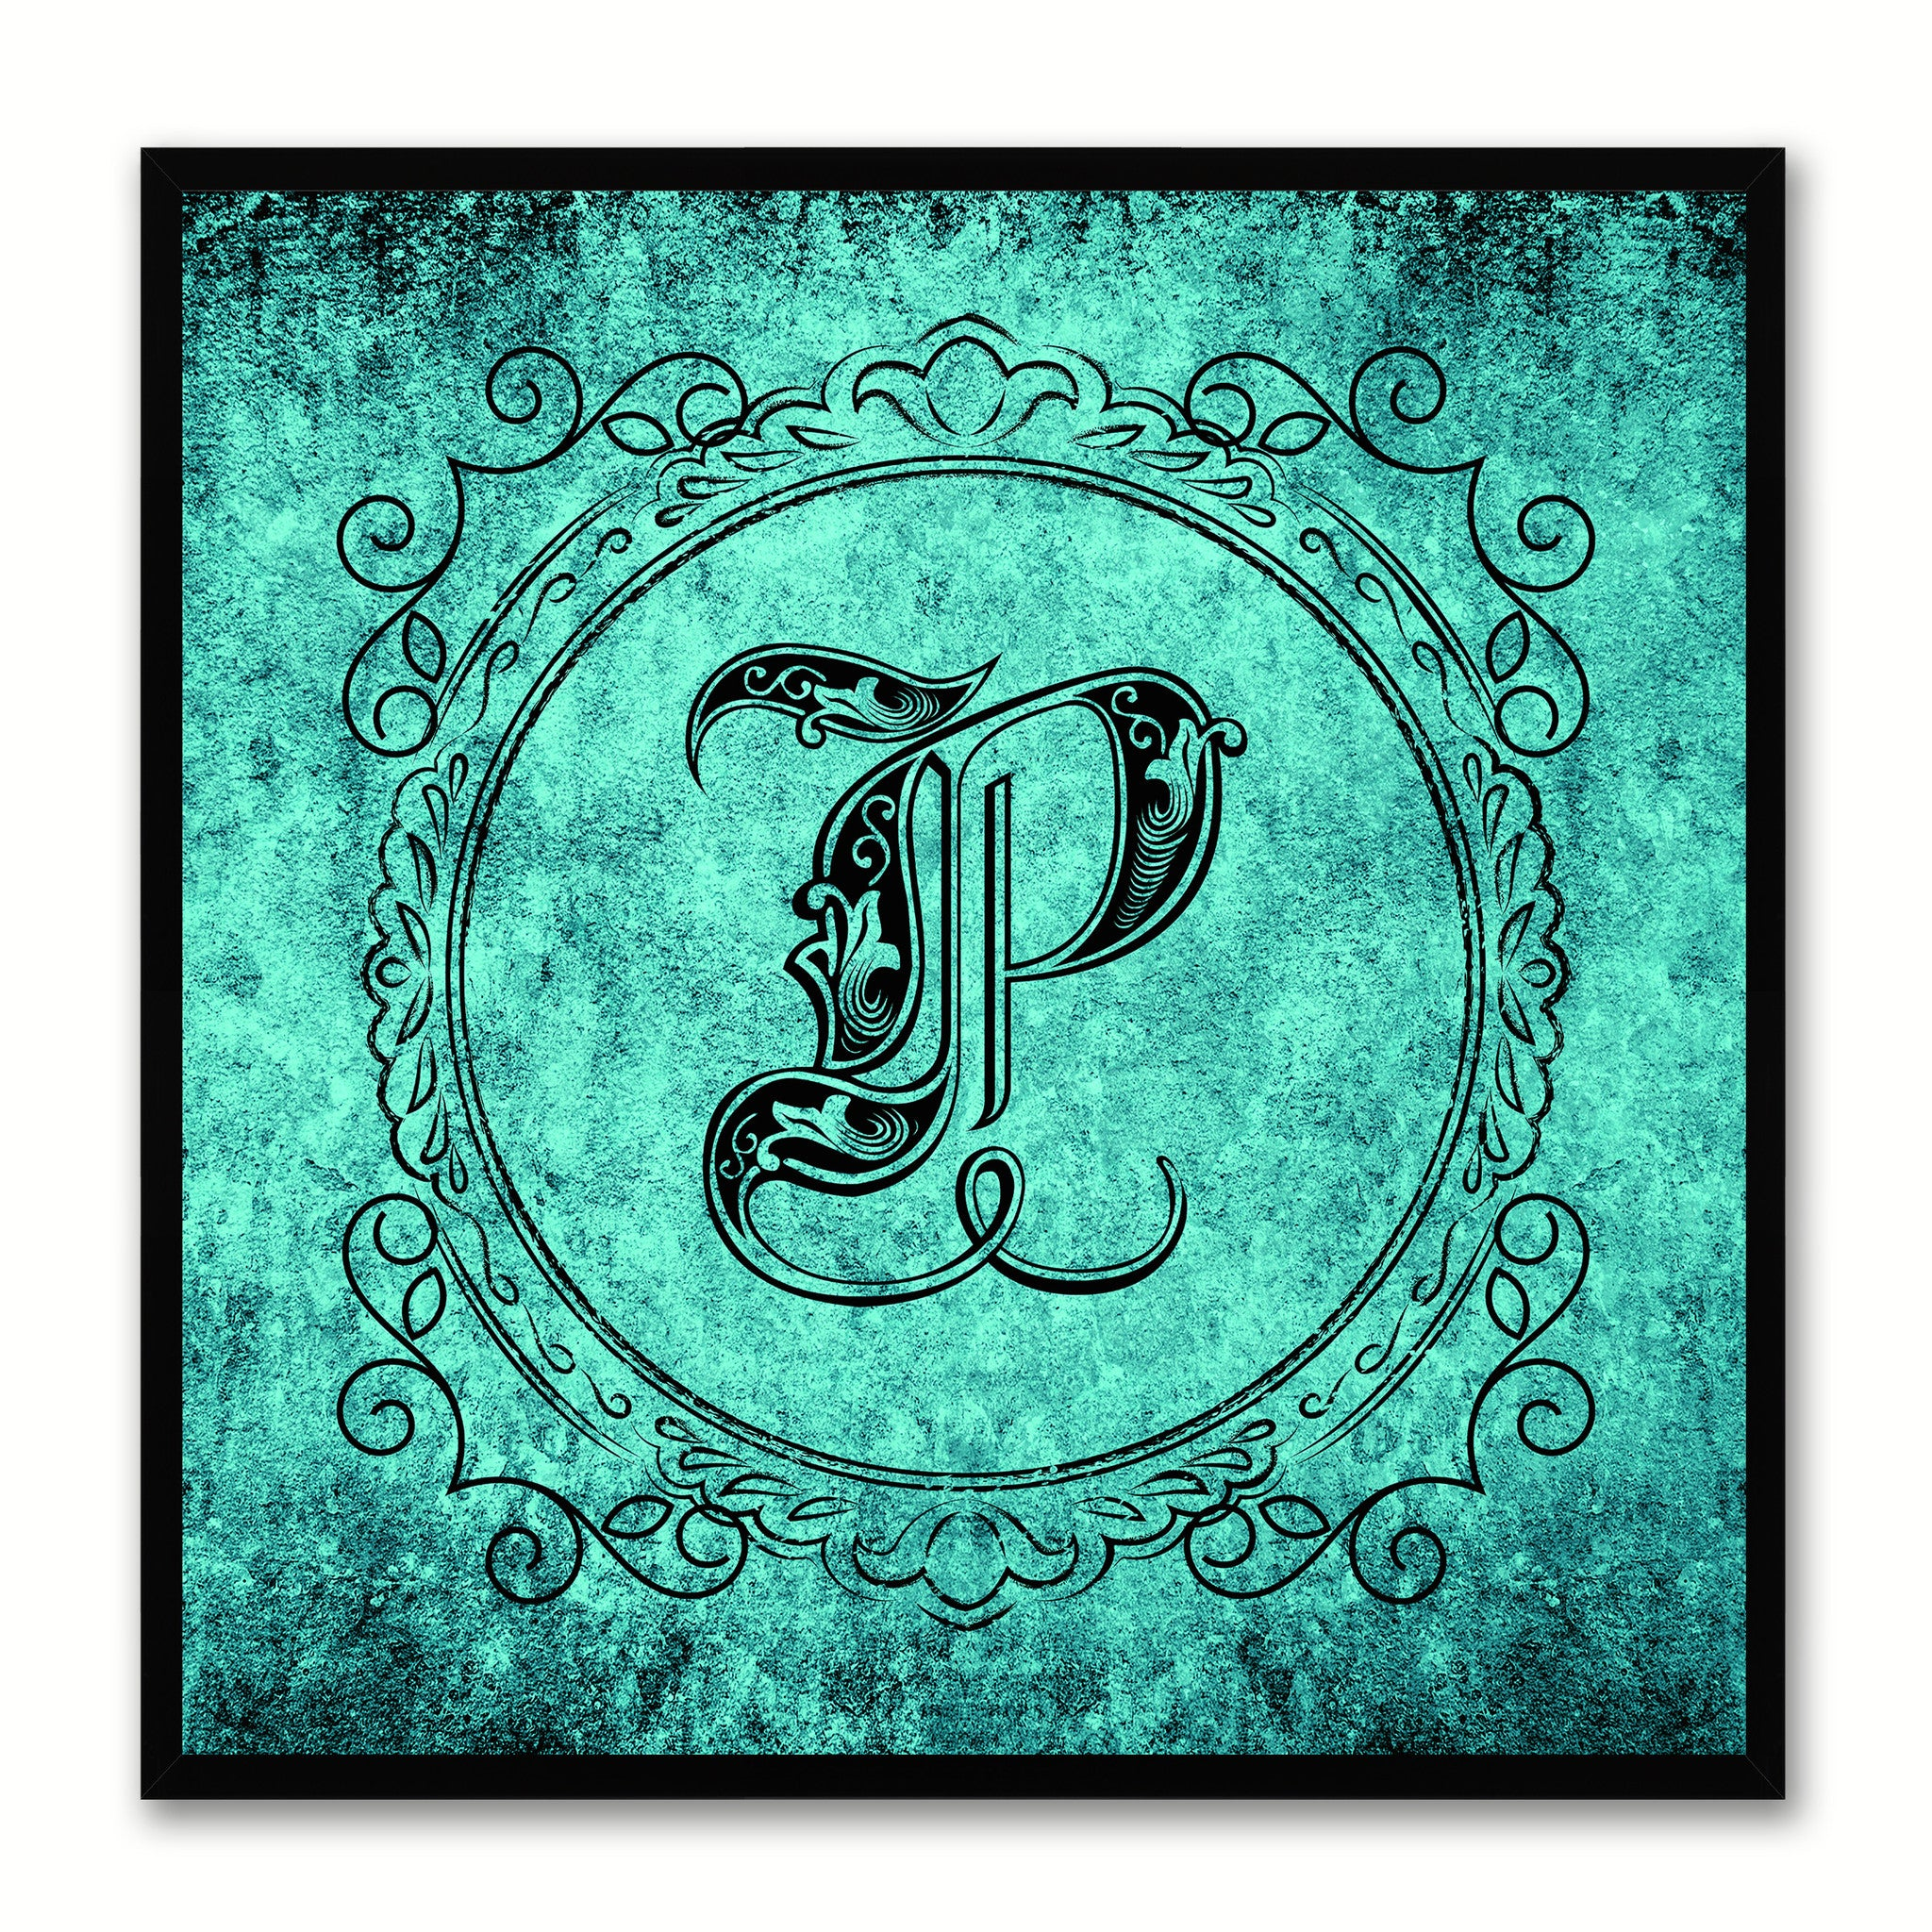 Alphabet P Aqua Canvas Print Black Frame Kids Bedroom Wall Décor Home Art